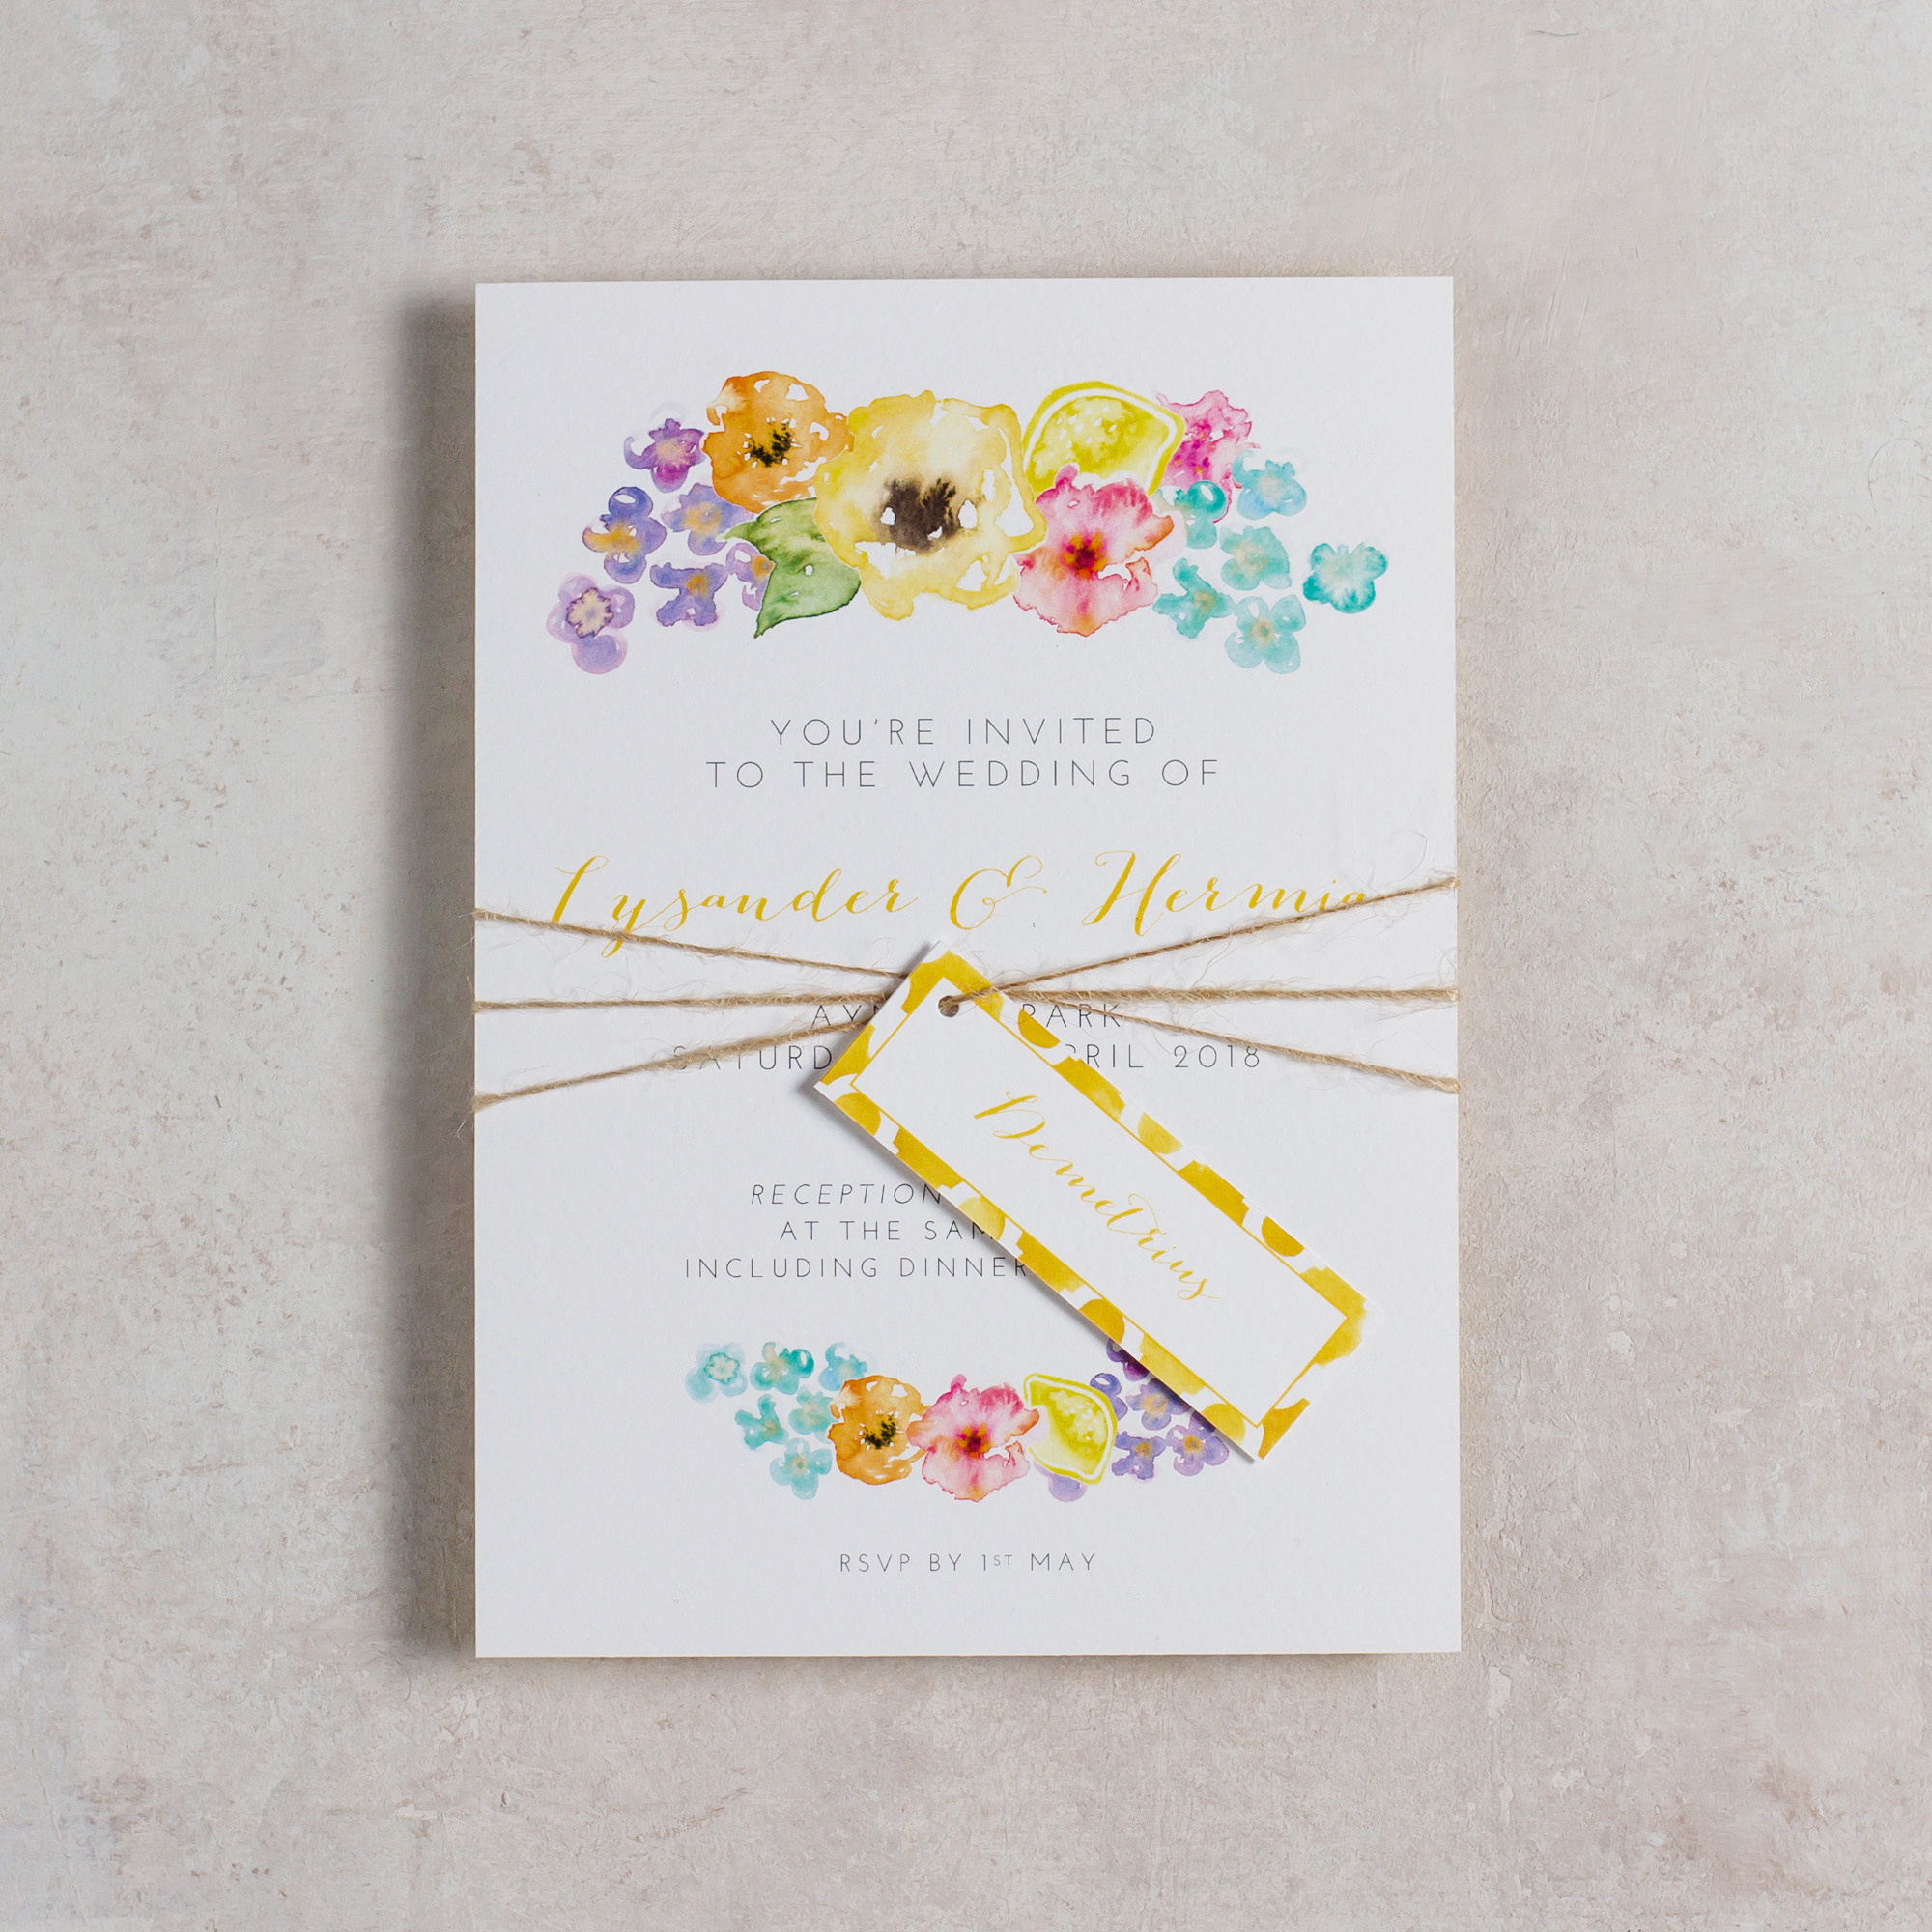 Summery-Wedding-Stationery-Luxury-Unique-Hand-Painted-Floral-Bright-Yellow-Wedding-Invitation-Parcel-Rising-Sun-Pingle-Pie.jpg